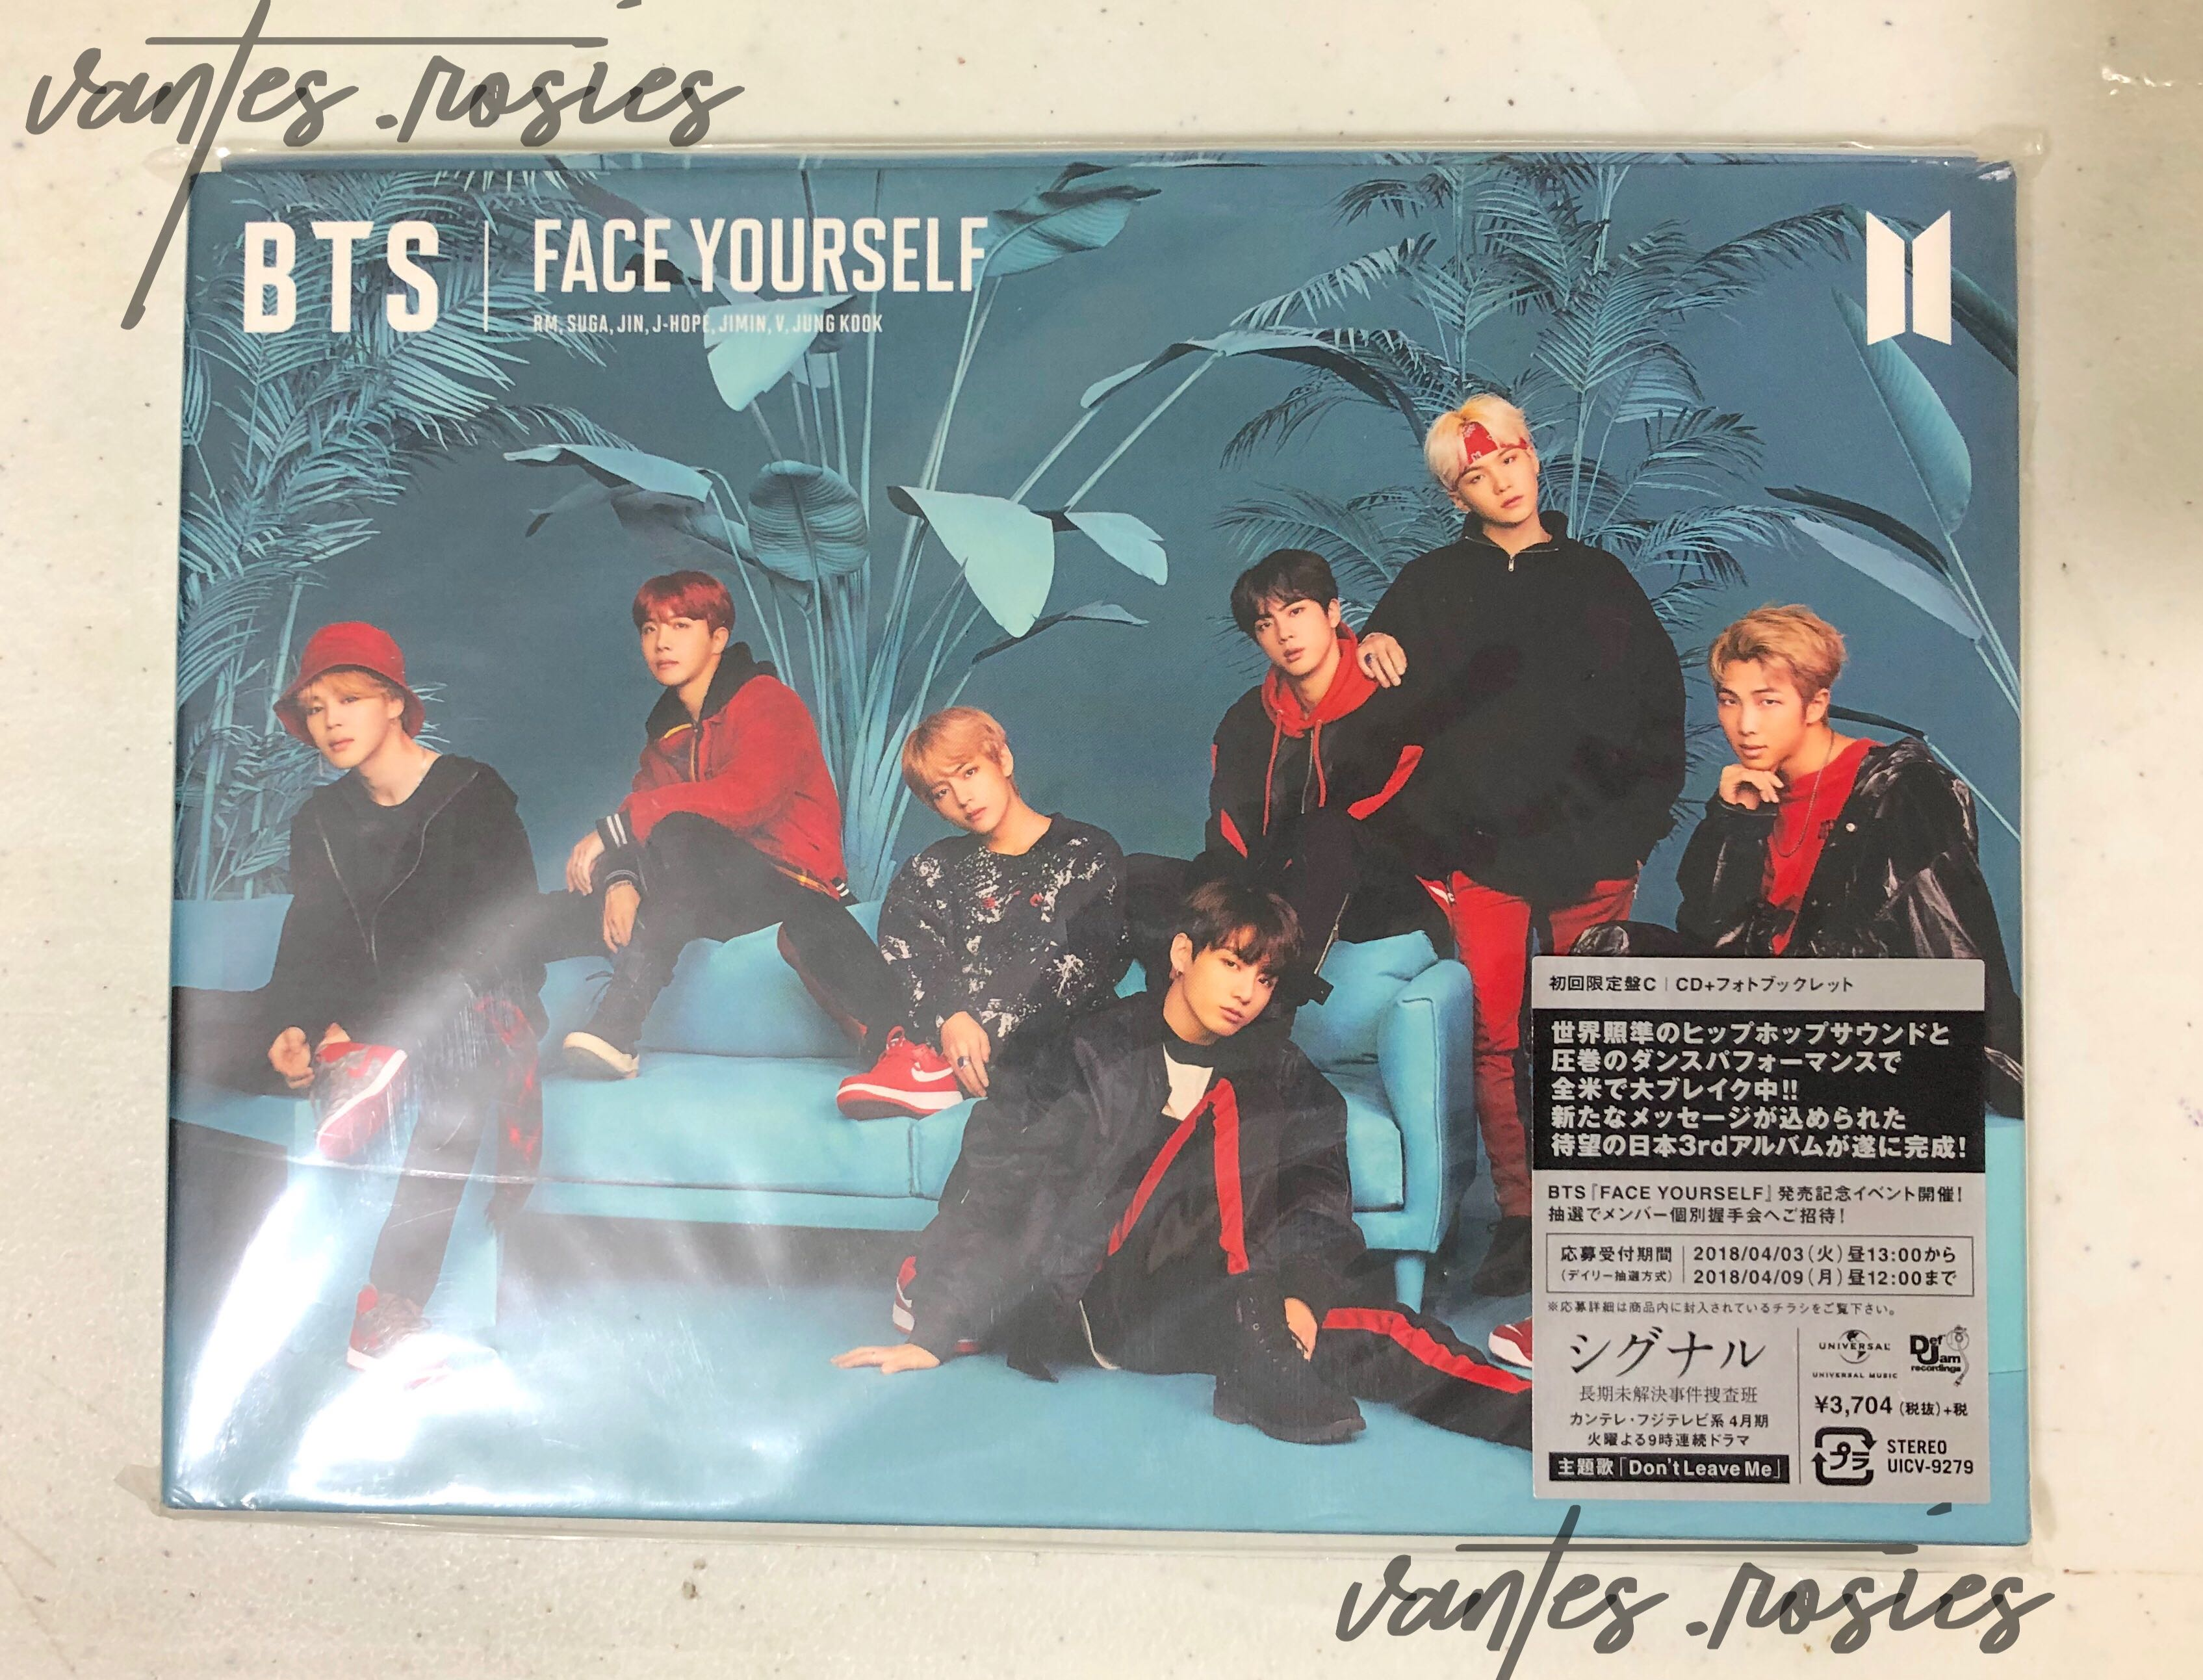 bts face yourself japanese alb 1594004967 75be36cd